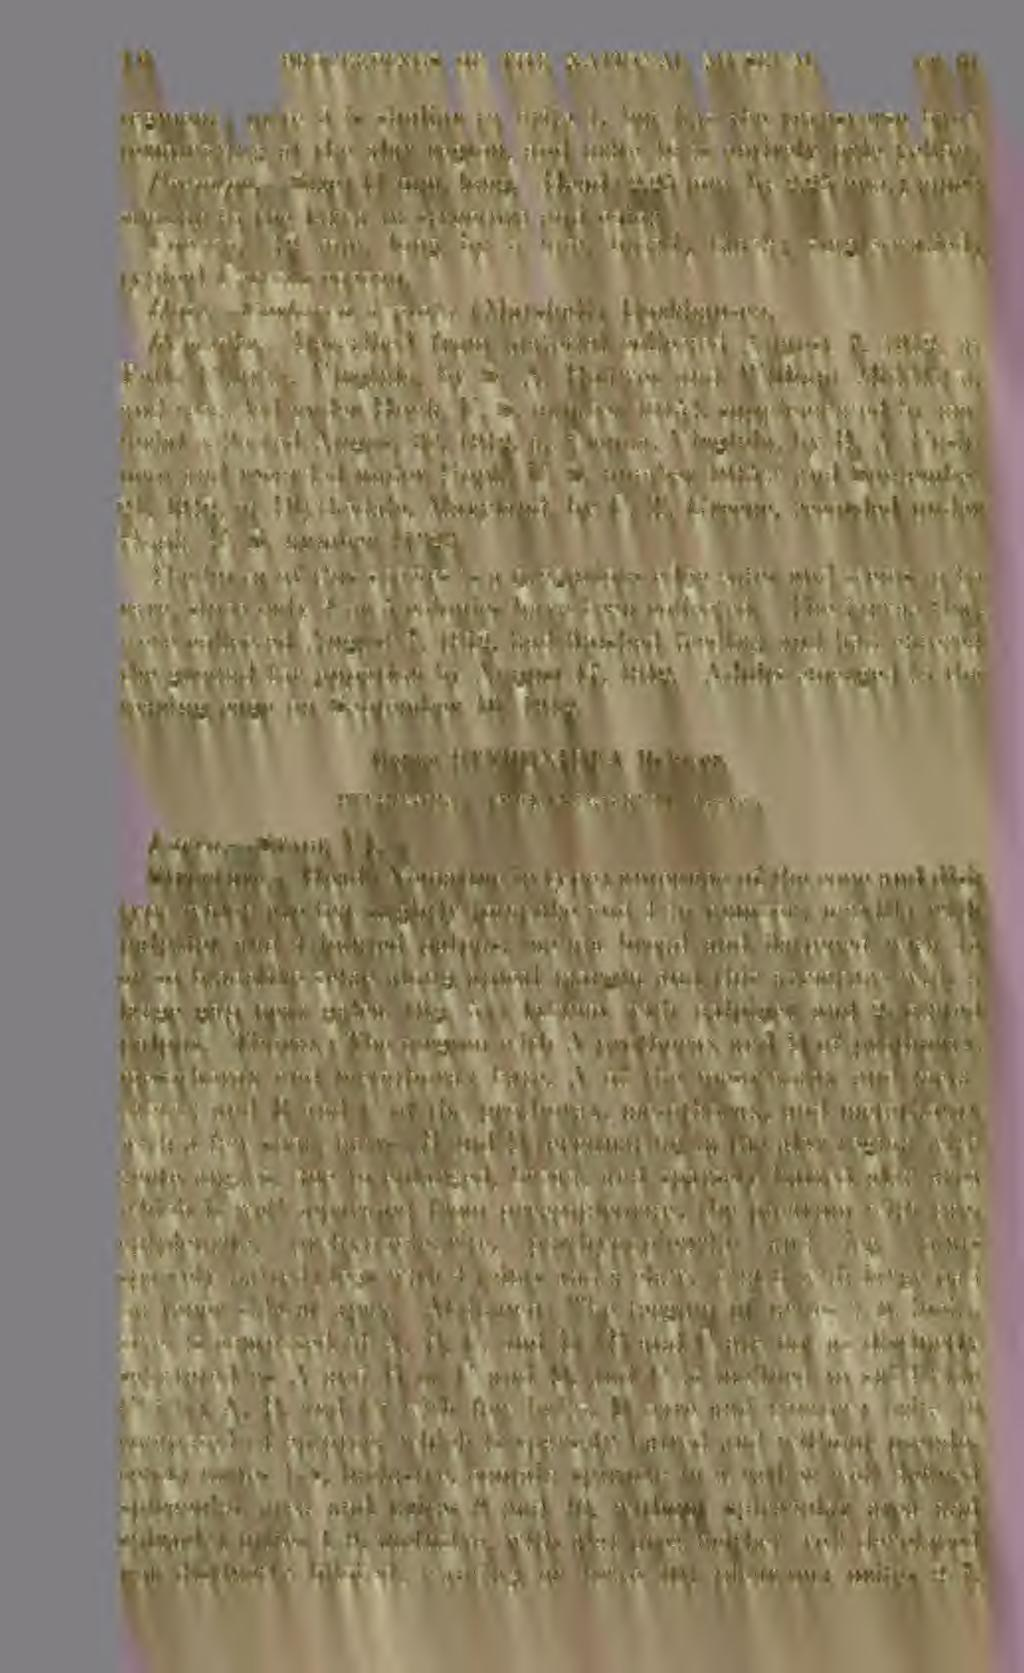 16 PROCEEDINGS OF THE NATIONAL MUSEUM. vol.61. segment iirite 9 is similar to urite 1, but has the transverse band terminating at the alar region, and urite 10 is entirely pale yellow. Prepupa.